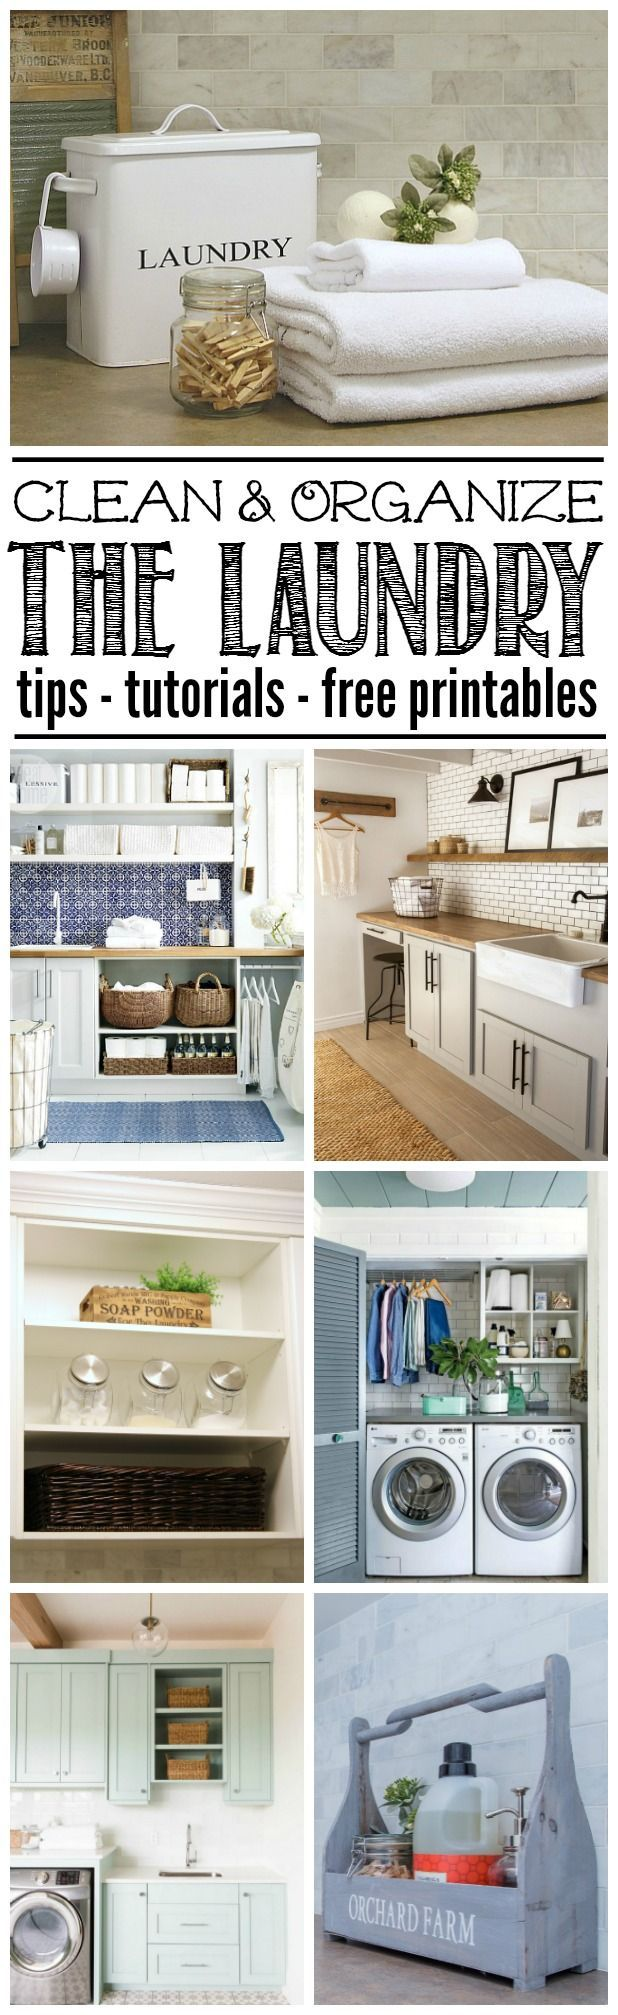 Organize the laundry room to create a beautiful and functional space with these tips and design ideas. Free printables included to help keep you on track!